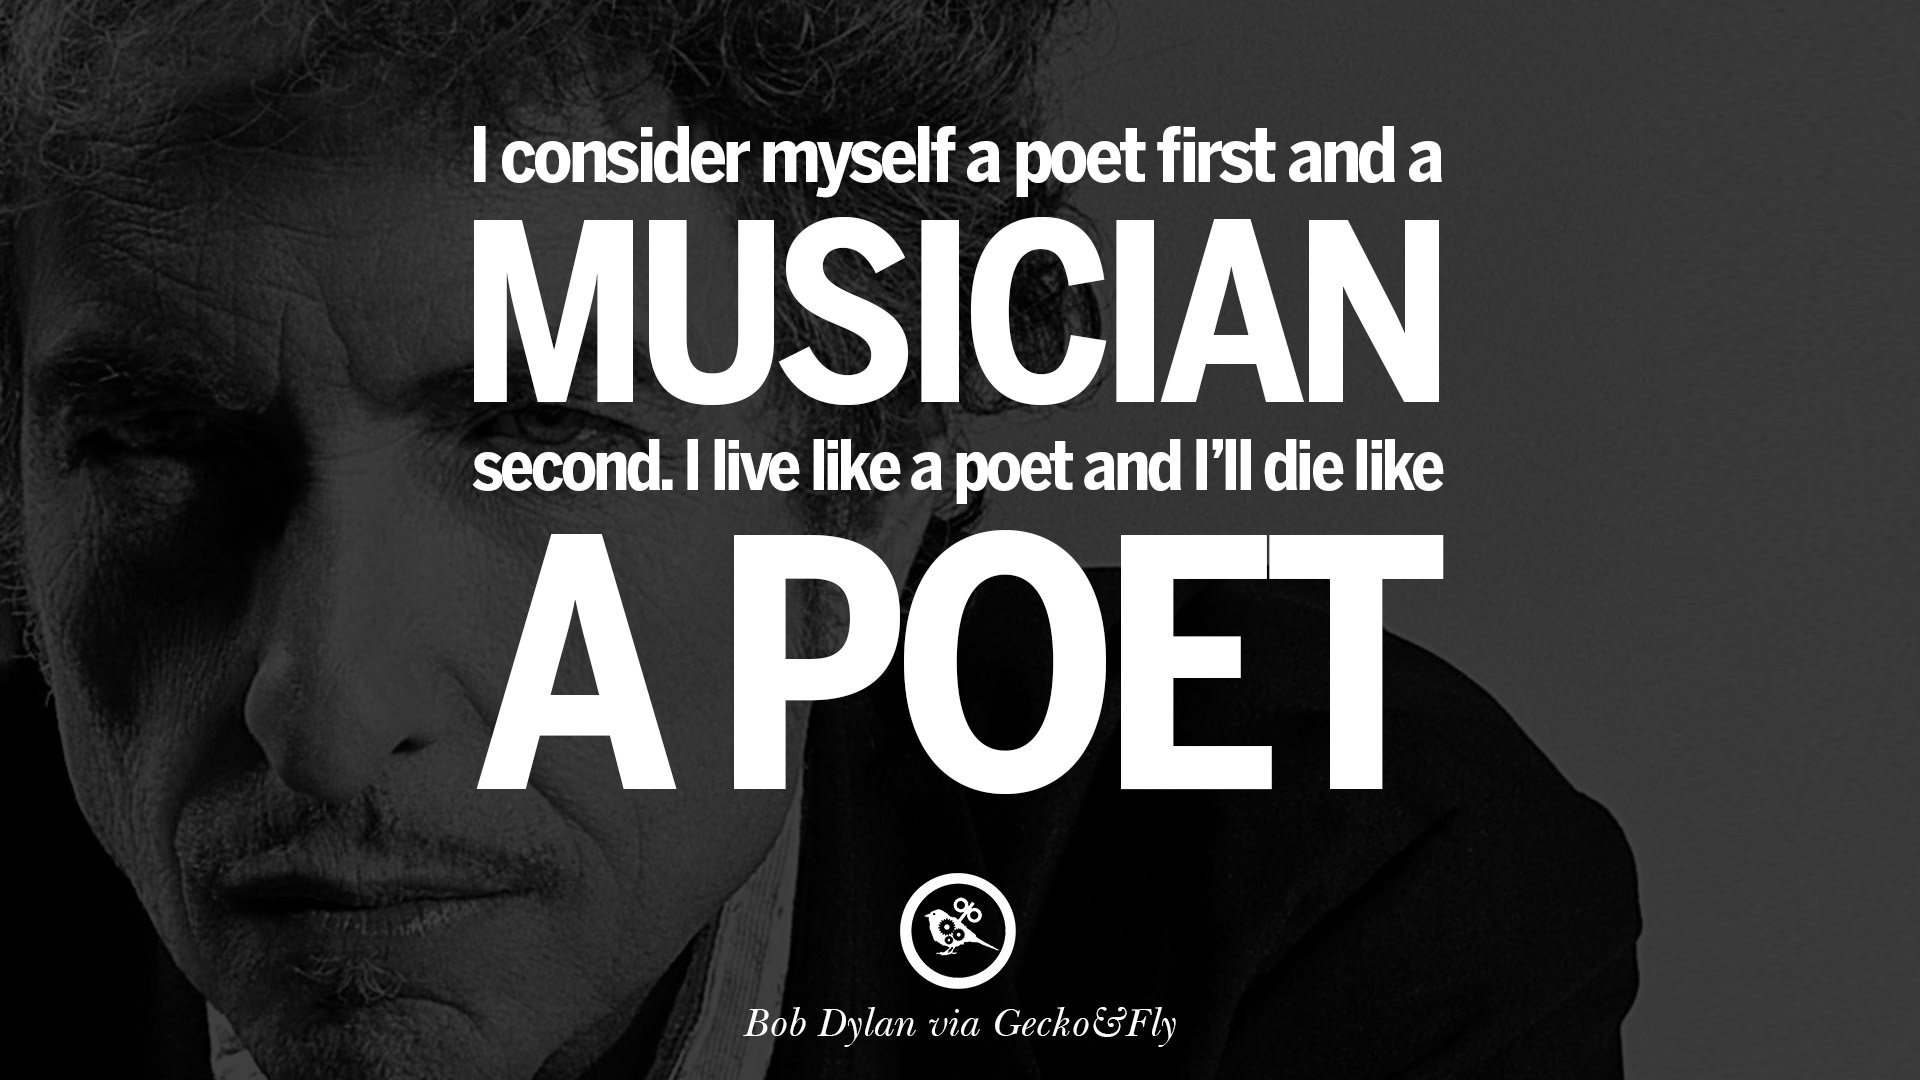 Poet Quotes 27 Inspirational Bob Dylan Quotes On Freedom Love Via His Lyrics